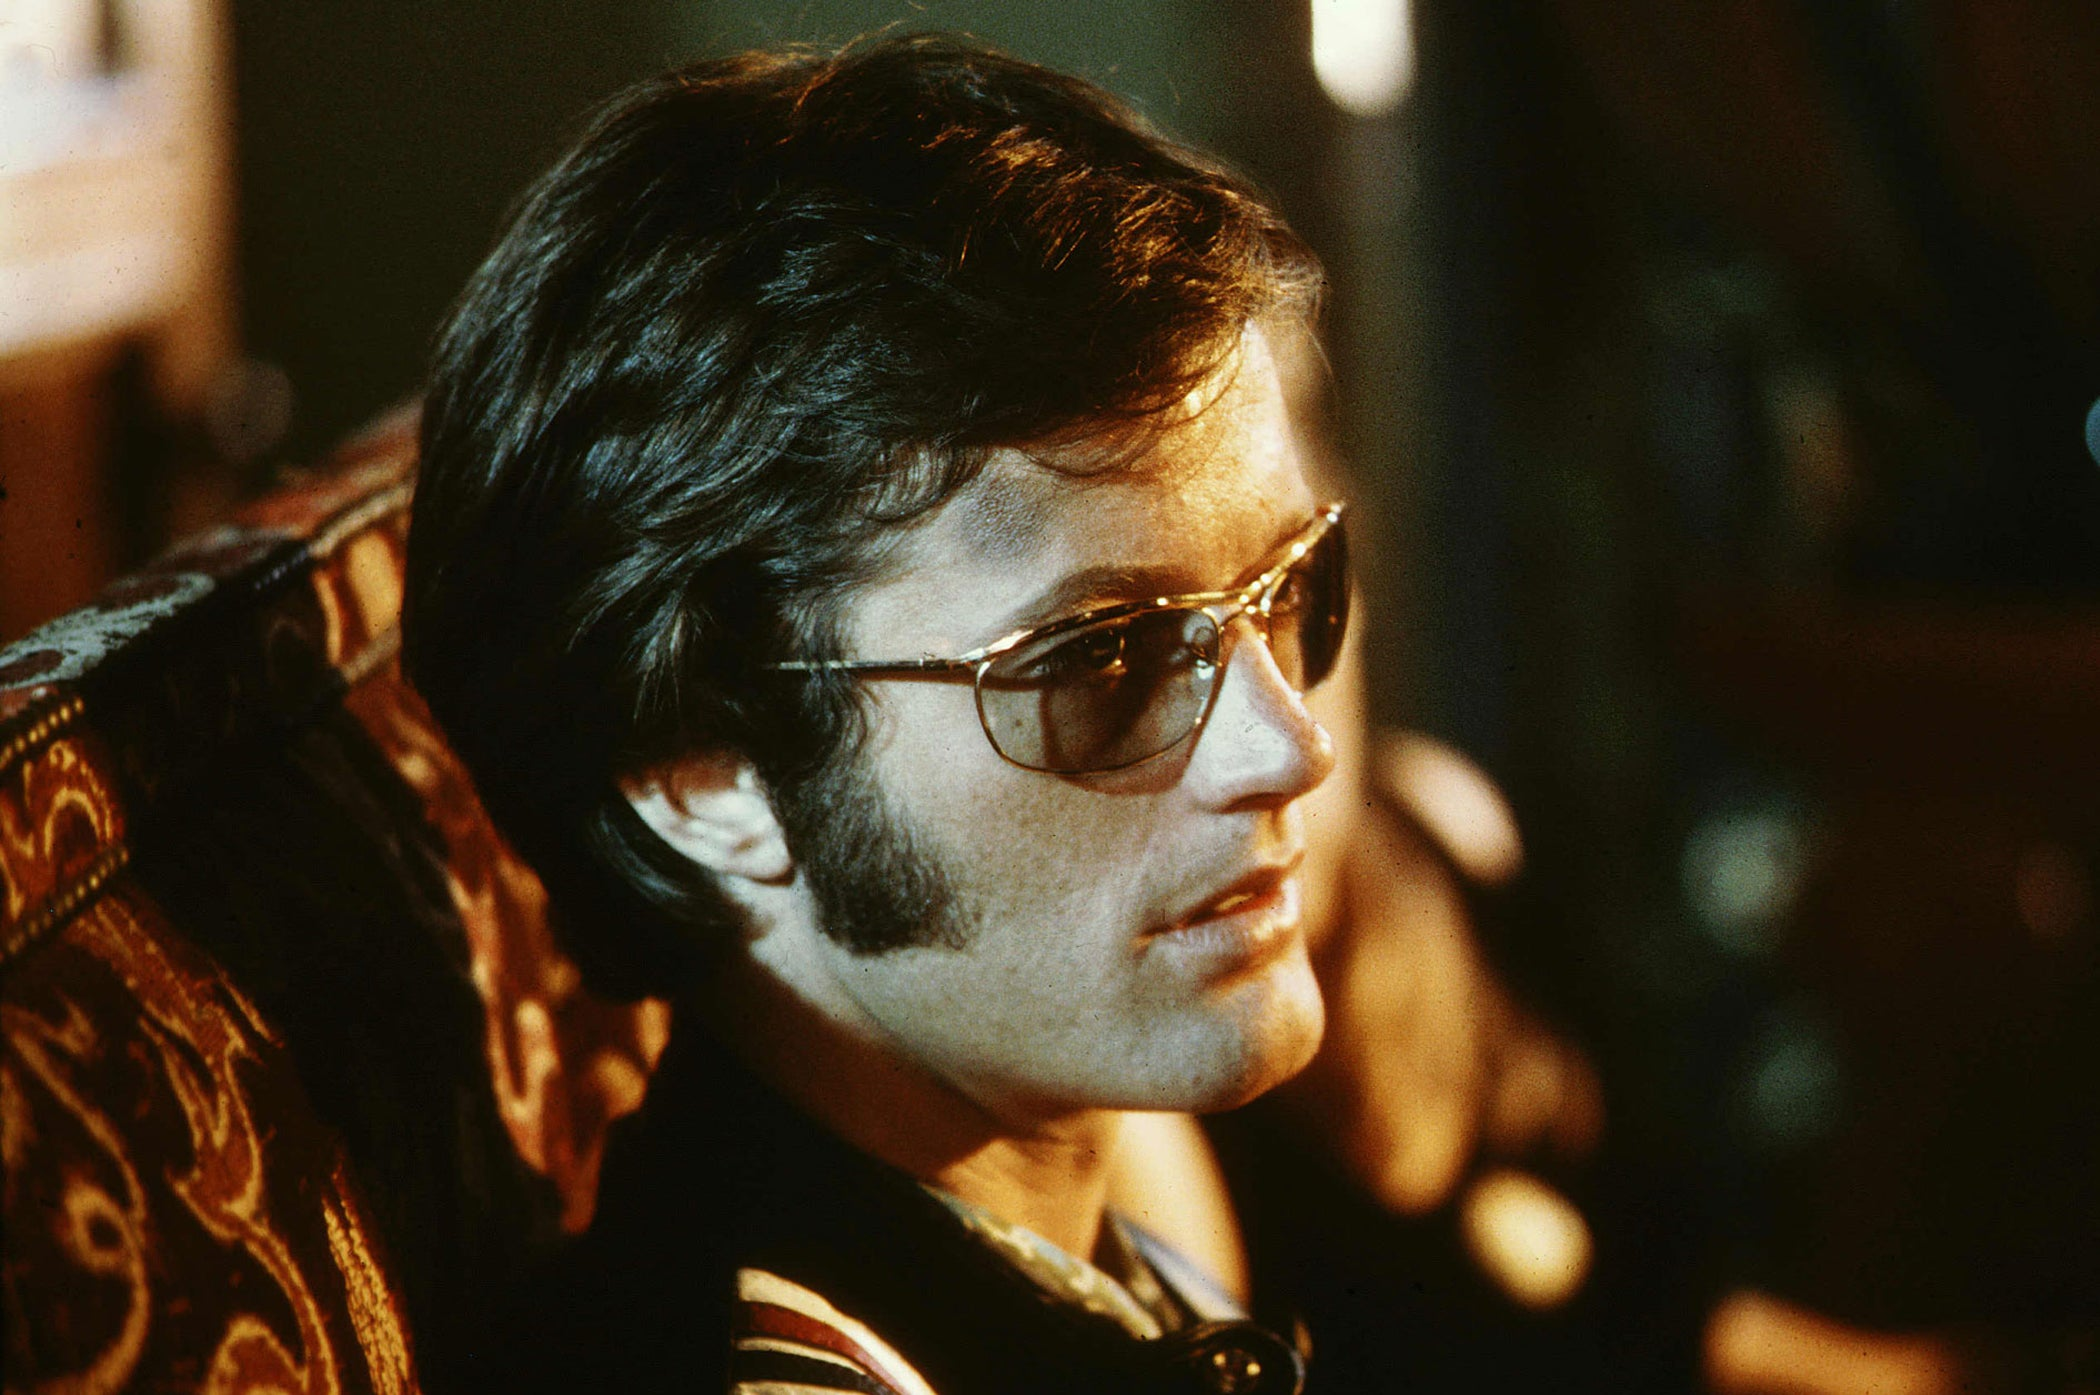 Peter Fonda as Wyatt